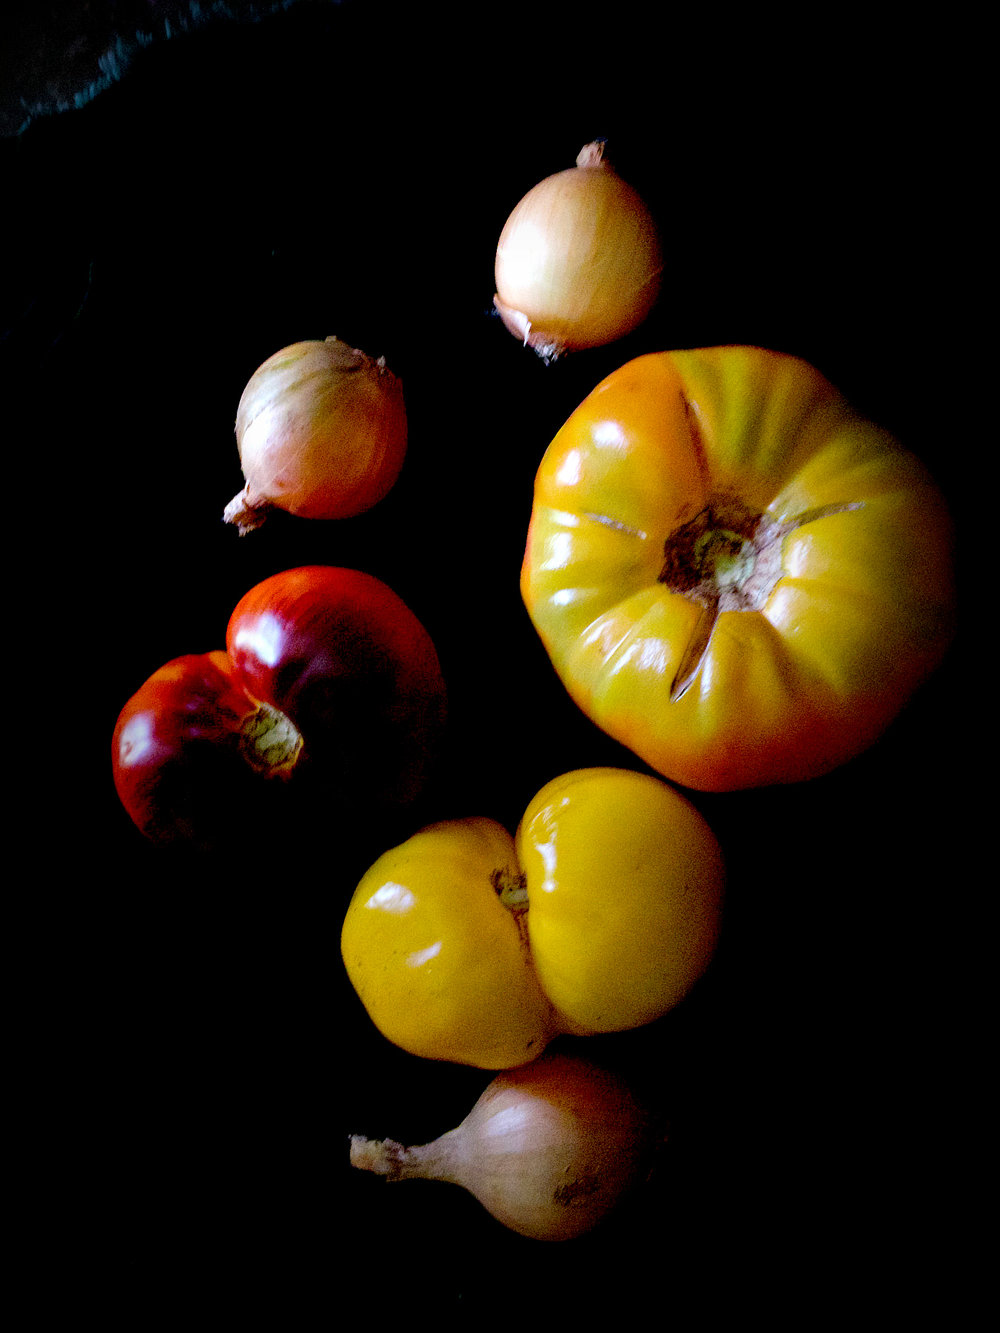 © Tomatoes by Dena T Bray